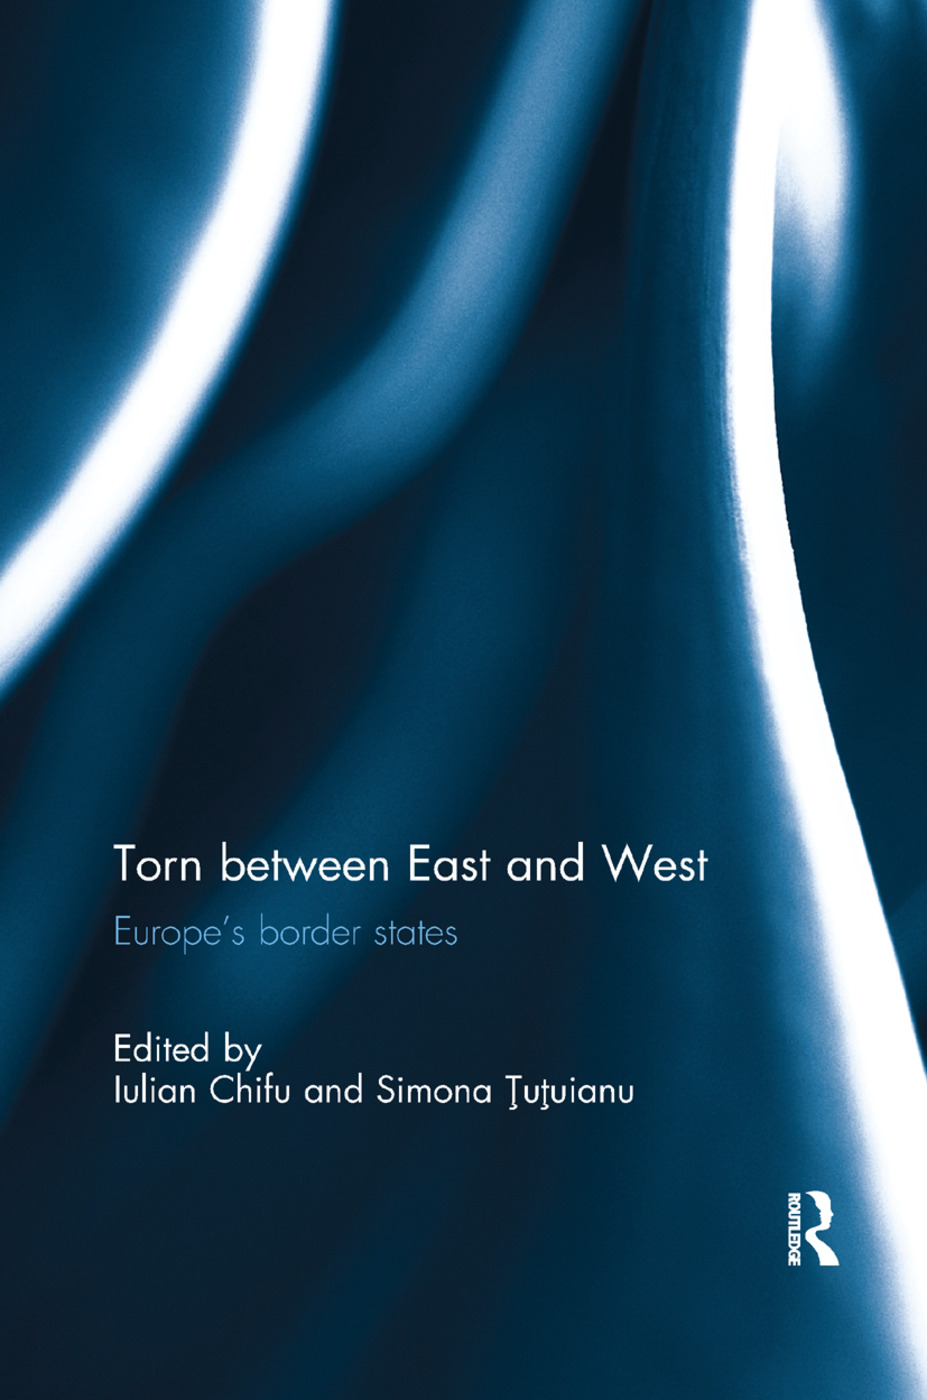 Torn between East and West